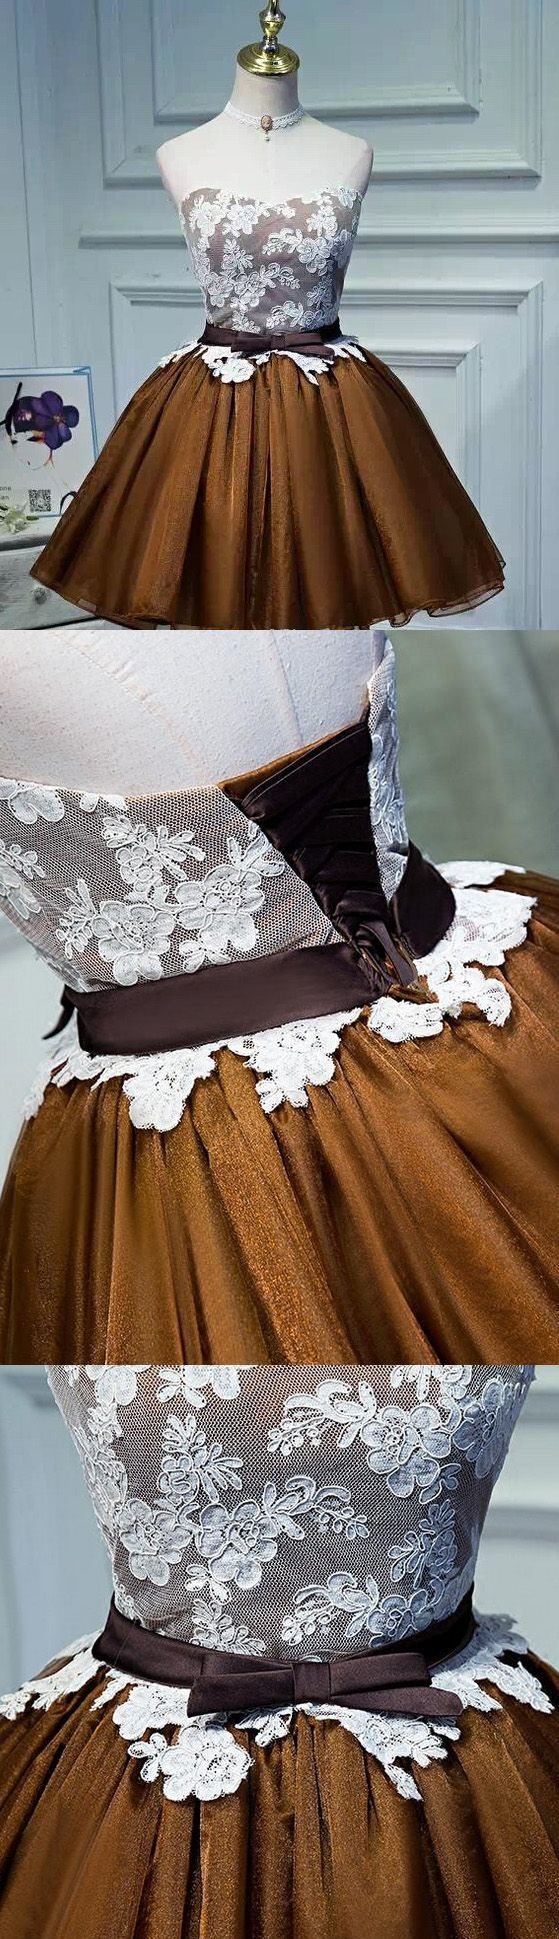 Short Homecoming Dresses, Chocolate Prom Dresses, Short Party Dresses 2018